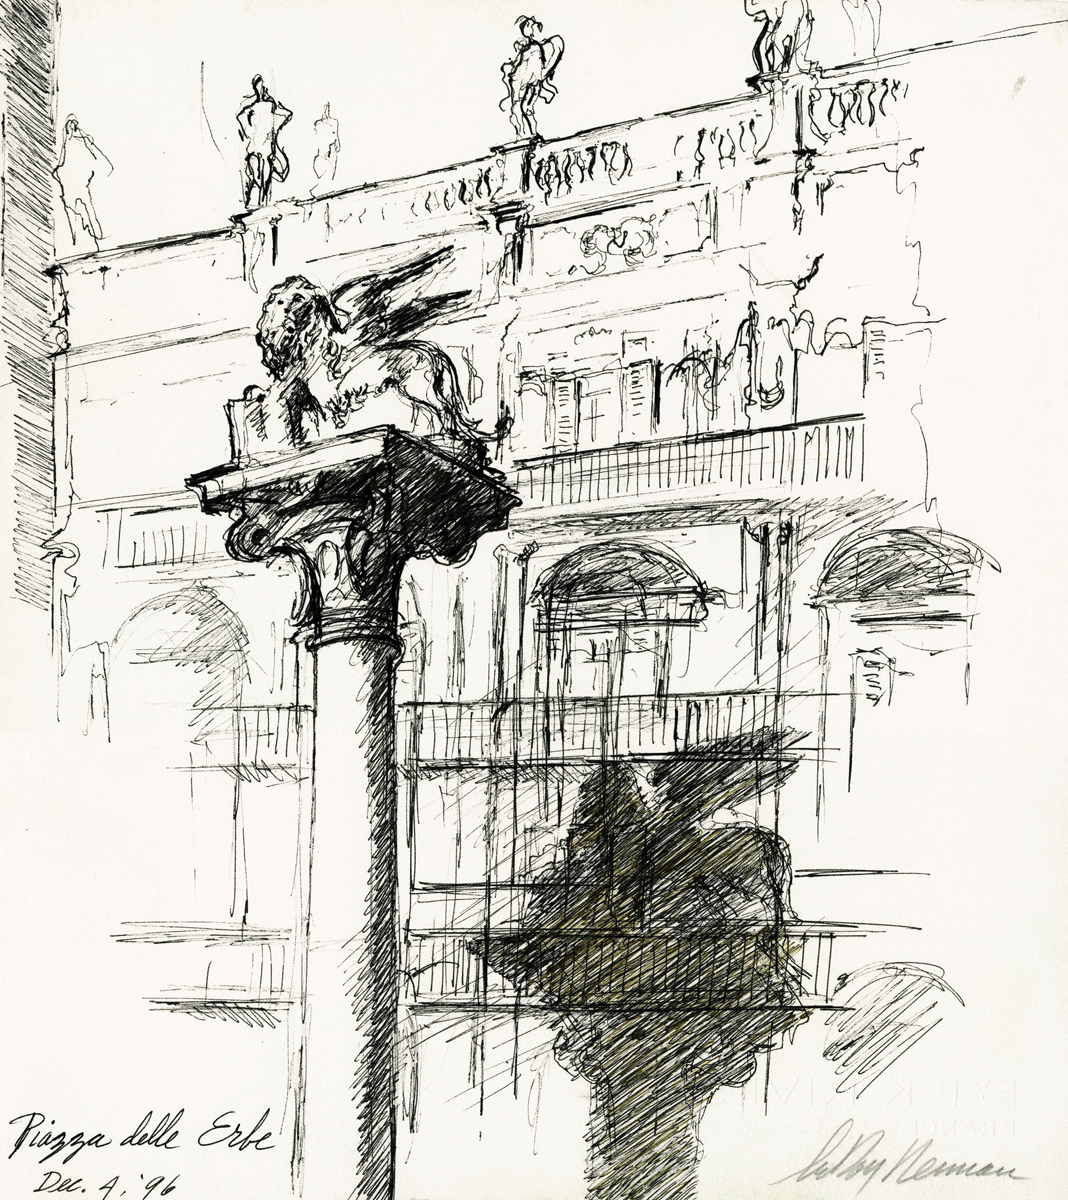 Piazza delle Erbe, Ink on paper, 15 x 13.5 in, 1996